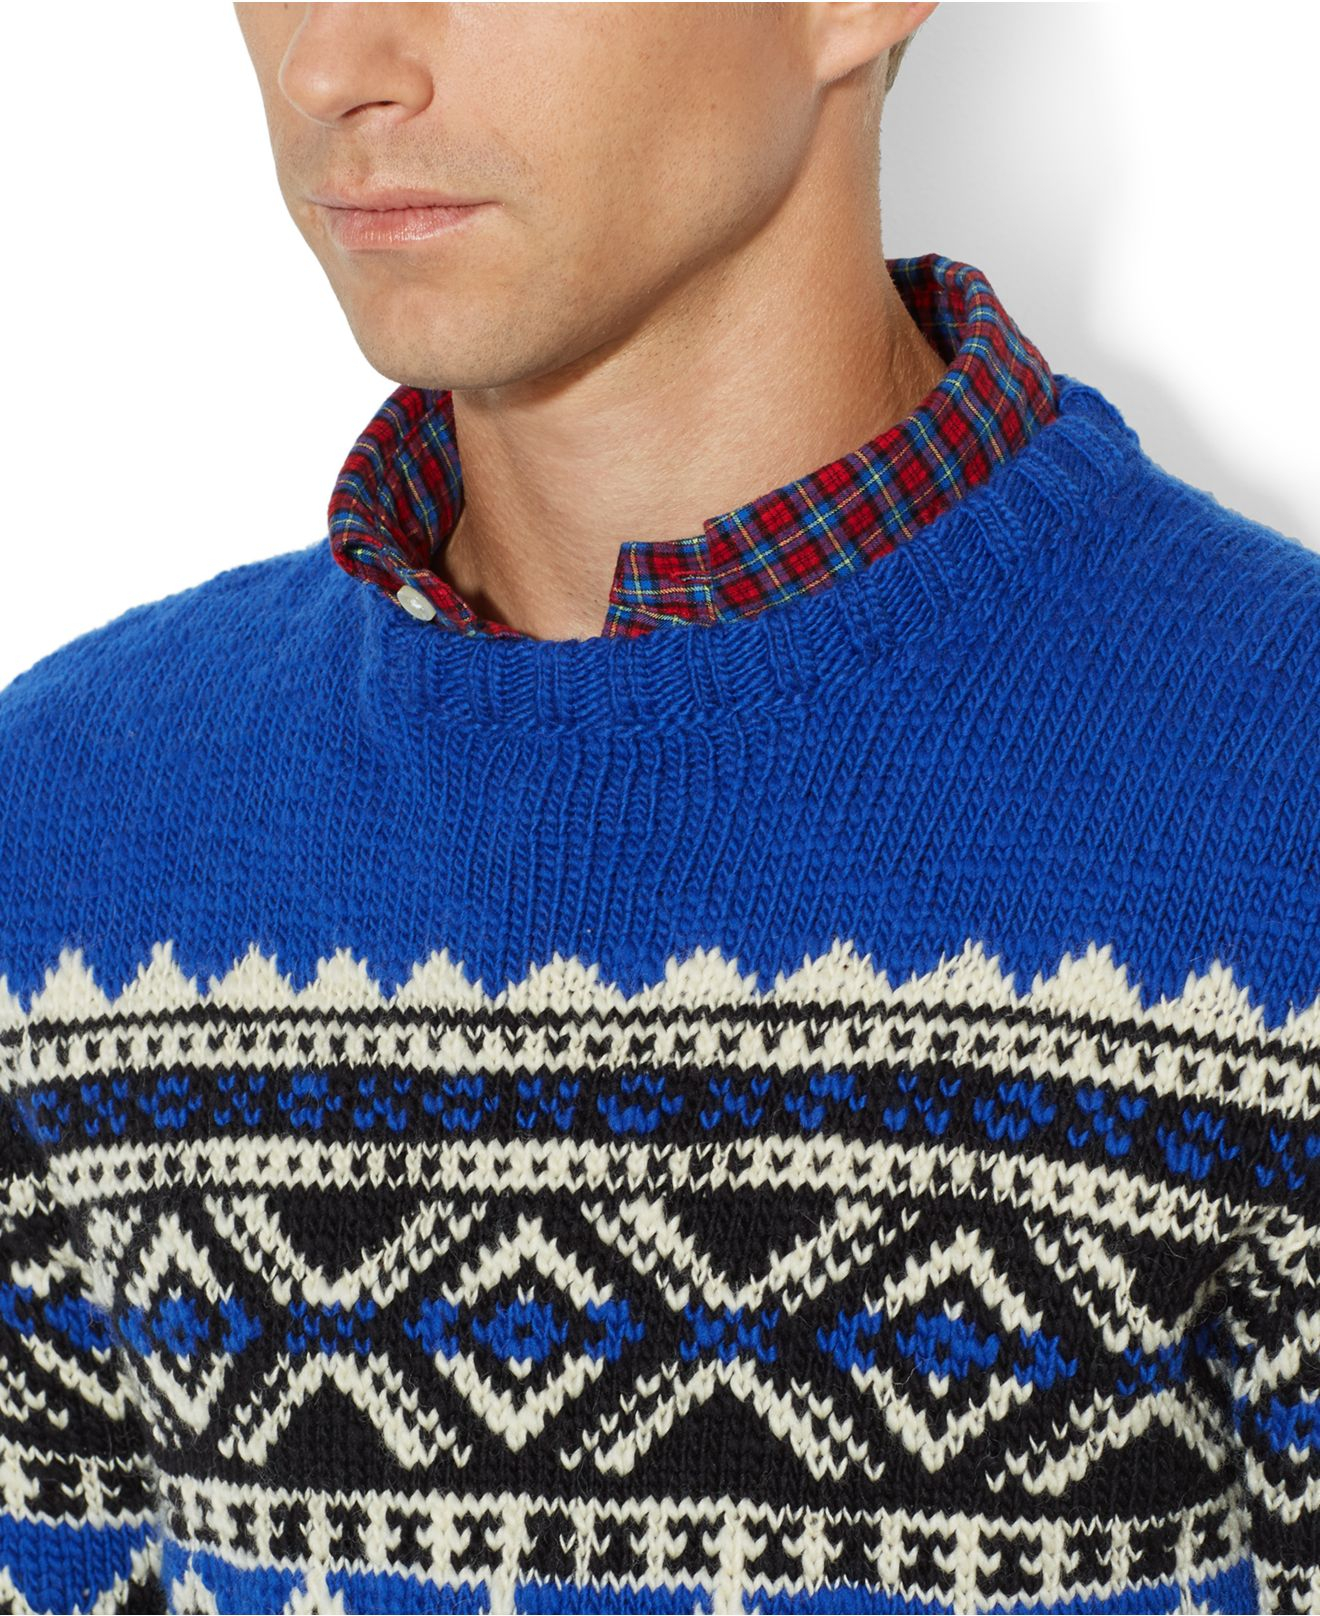 35a4778124606 Lyst - Polo Ralph Lauren Nordic-Print Sweater in Blue for Men